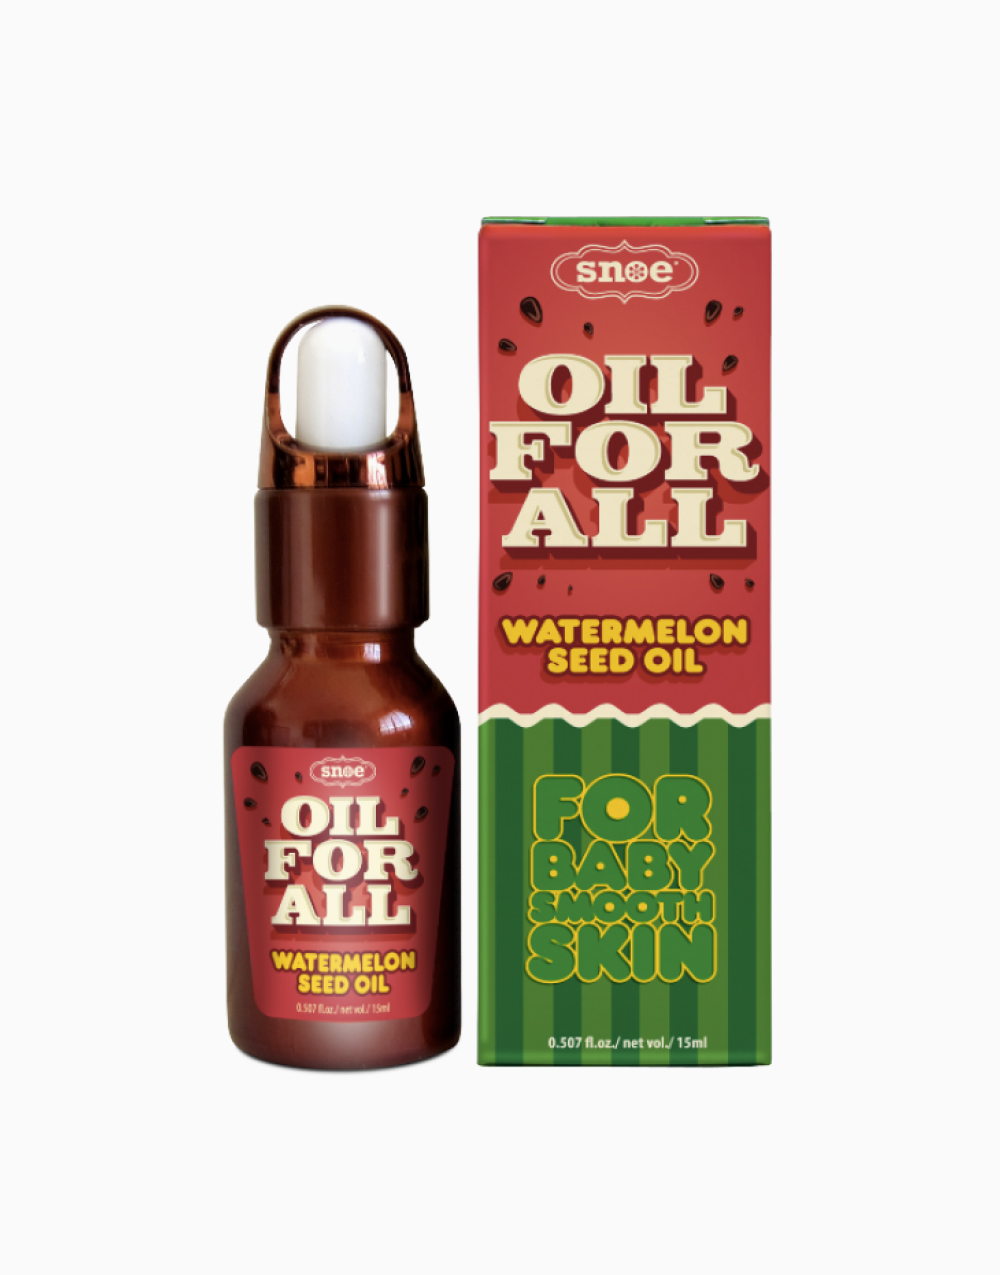 Oil For All Watermelon Seed Oil by Snoe Beauty